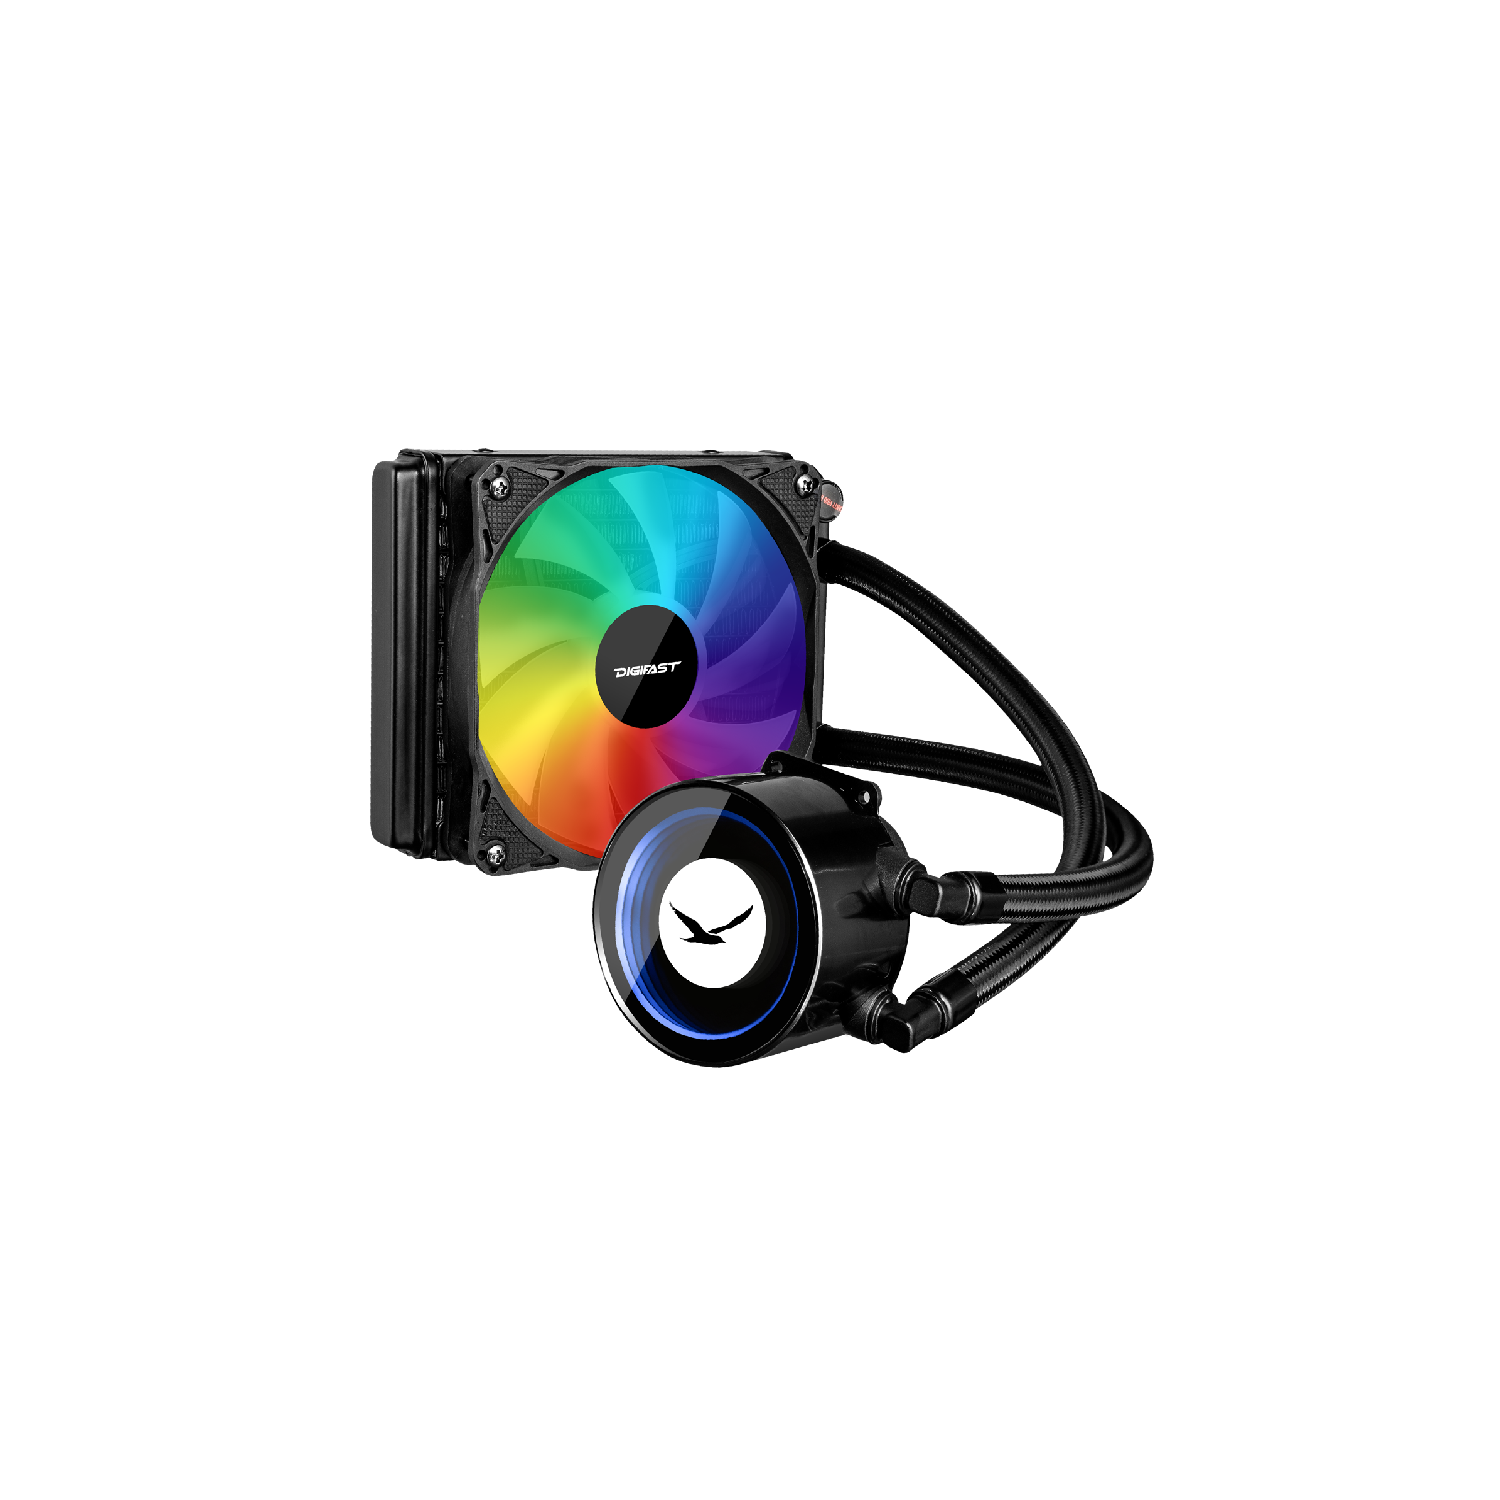 CPU Cooler - Digifast AIO Notos Liquid CPU Cooler N12 Sync AMD Intel